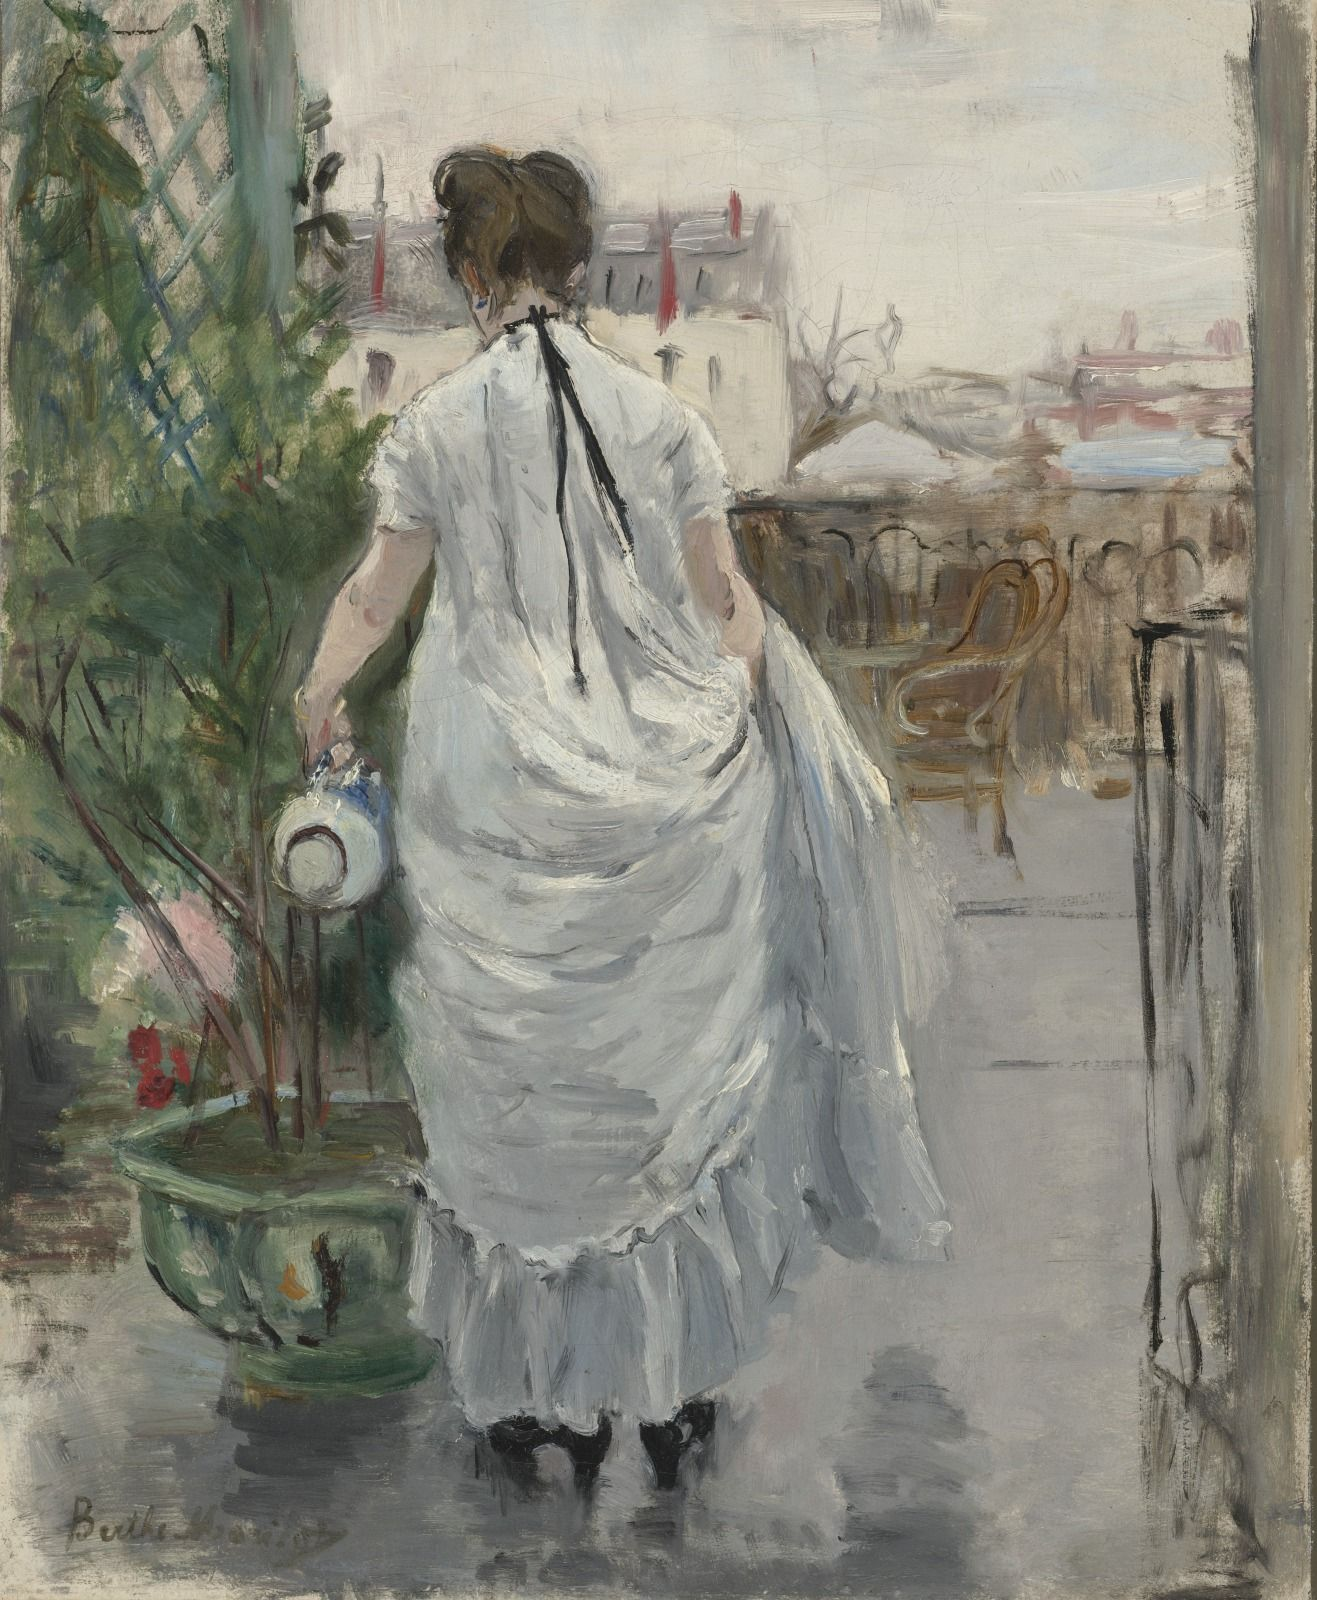 """VMFA ar Twitter: """"Berthe Marisot, French painter and a """"grandes dame"""" of  Impressionism alongside Marie Bracquemond & Mary Cassatt. Marisot worked  tirelessly to prove equal to her male counterparts and focused her art  around the female experience ..."""